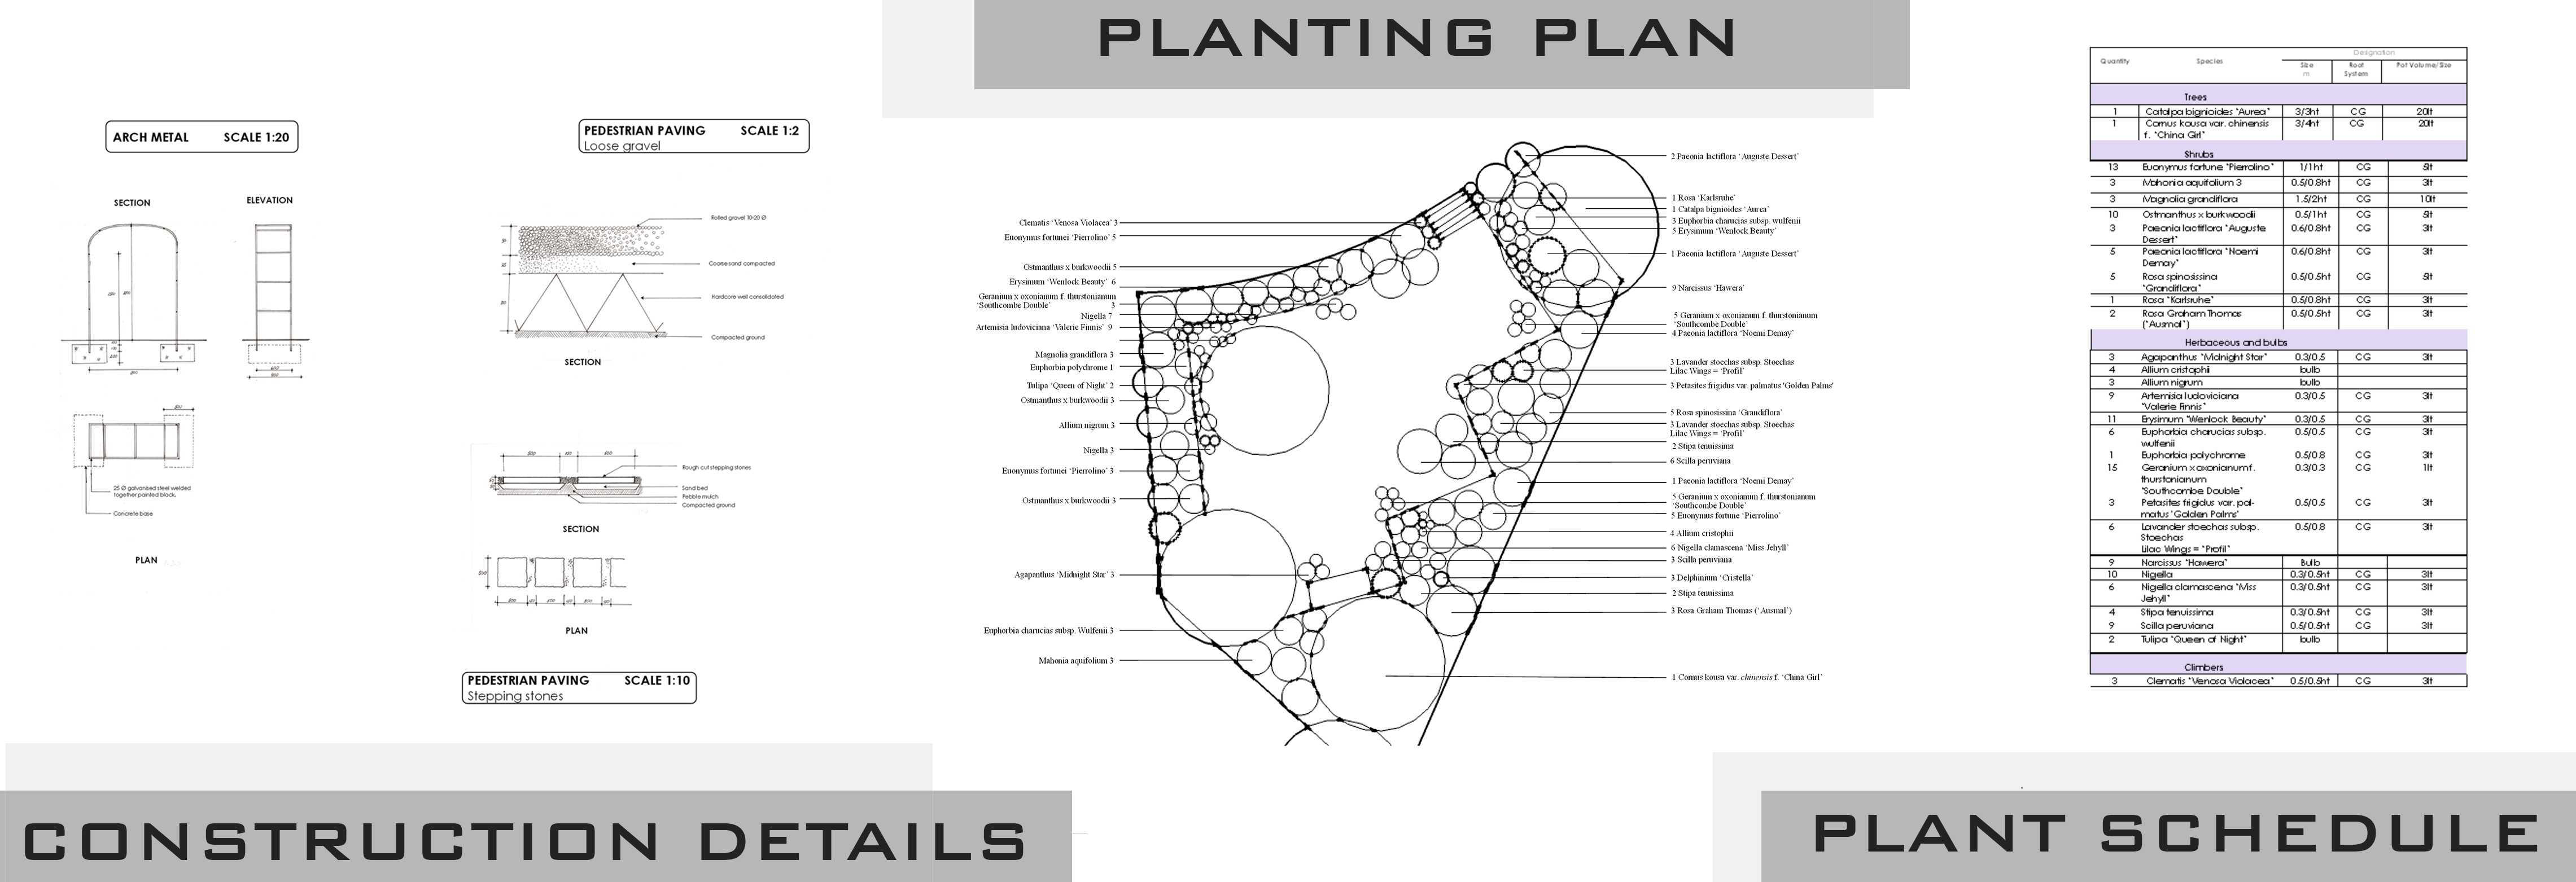 PLANTING PLAN, CONSTRUCTION DETAILS, PLANT SCHEDULE